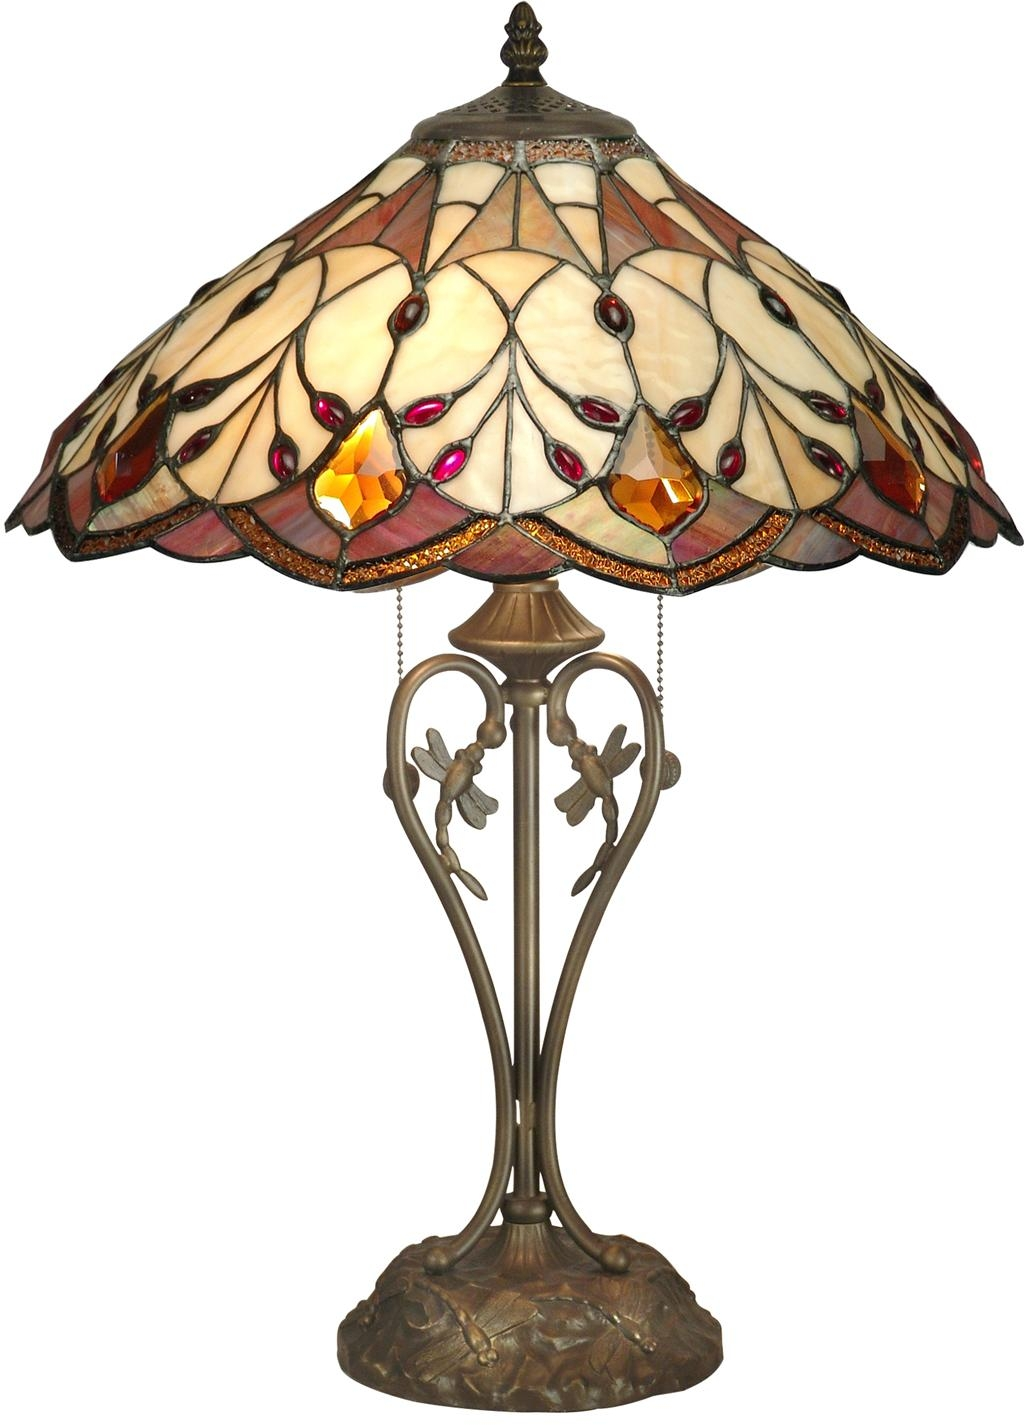 dale tiffany marshall table lamp large art glass gems dragonfly base. Black Bedroom Furniture Sets. Home Design Ideas